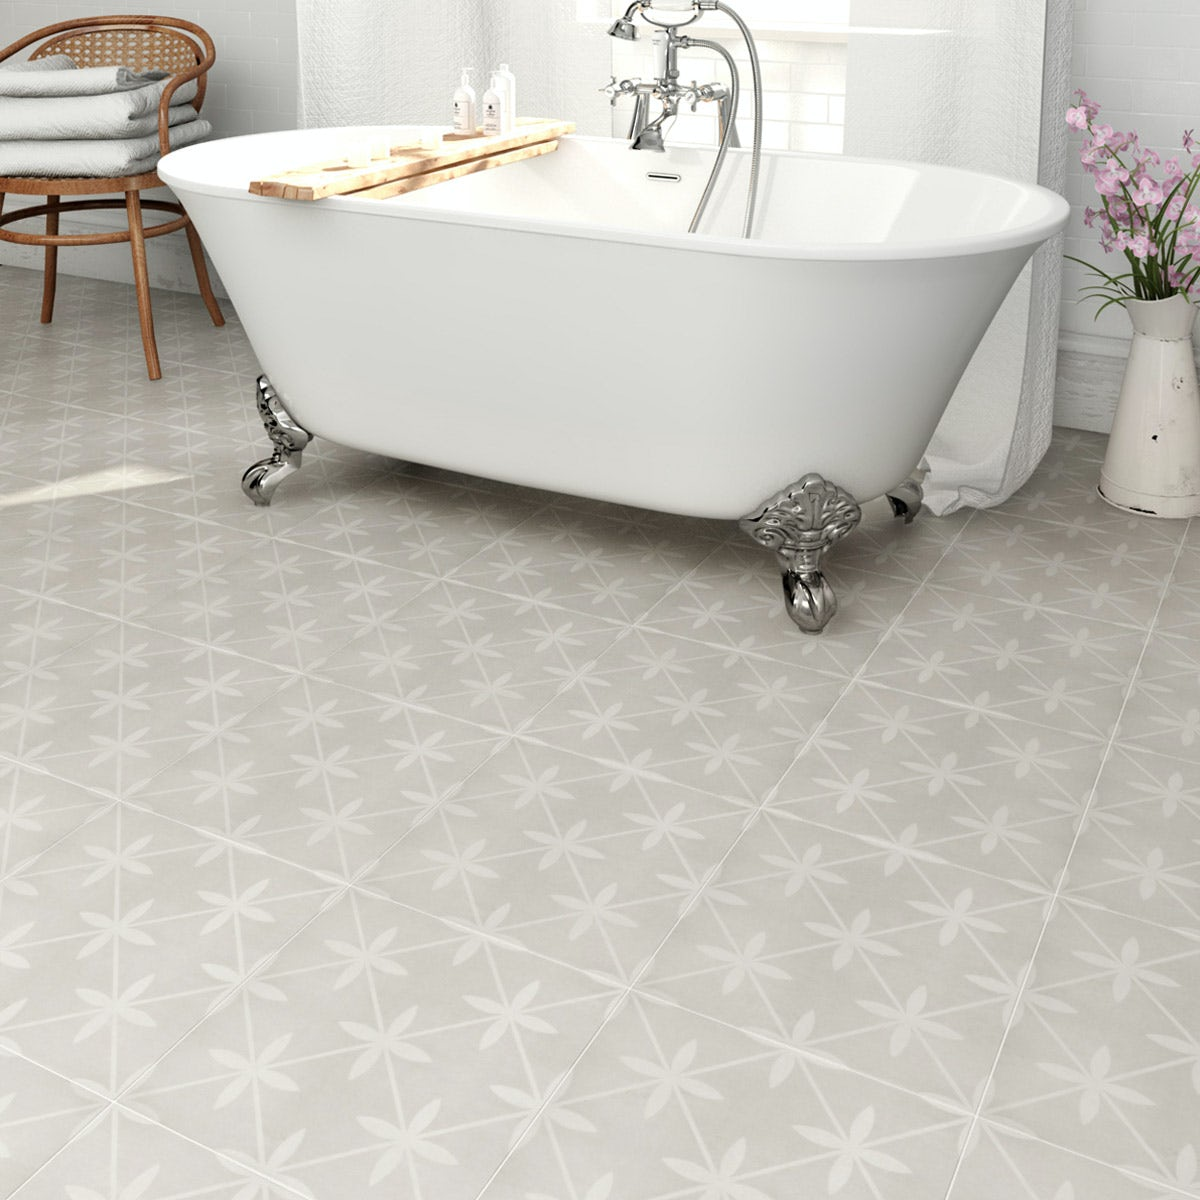 Kitchen Tiles Laura Ashley tileslaura ashley | victoriaplum